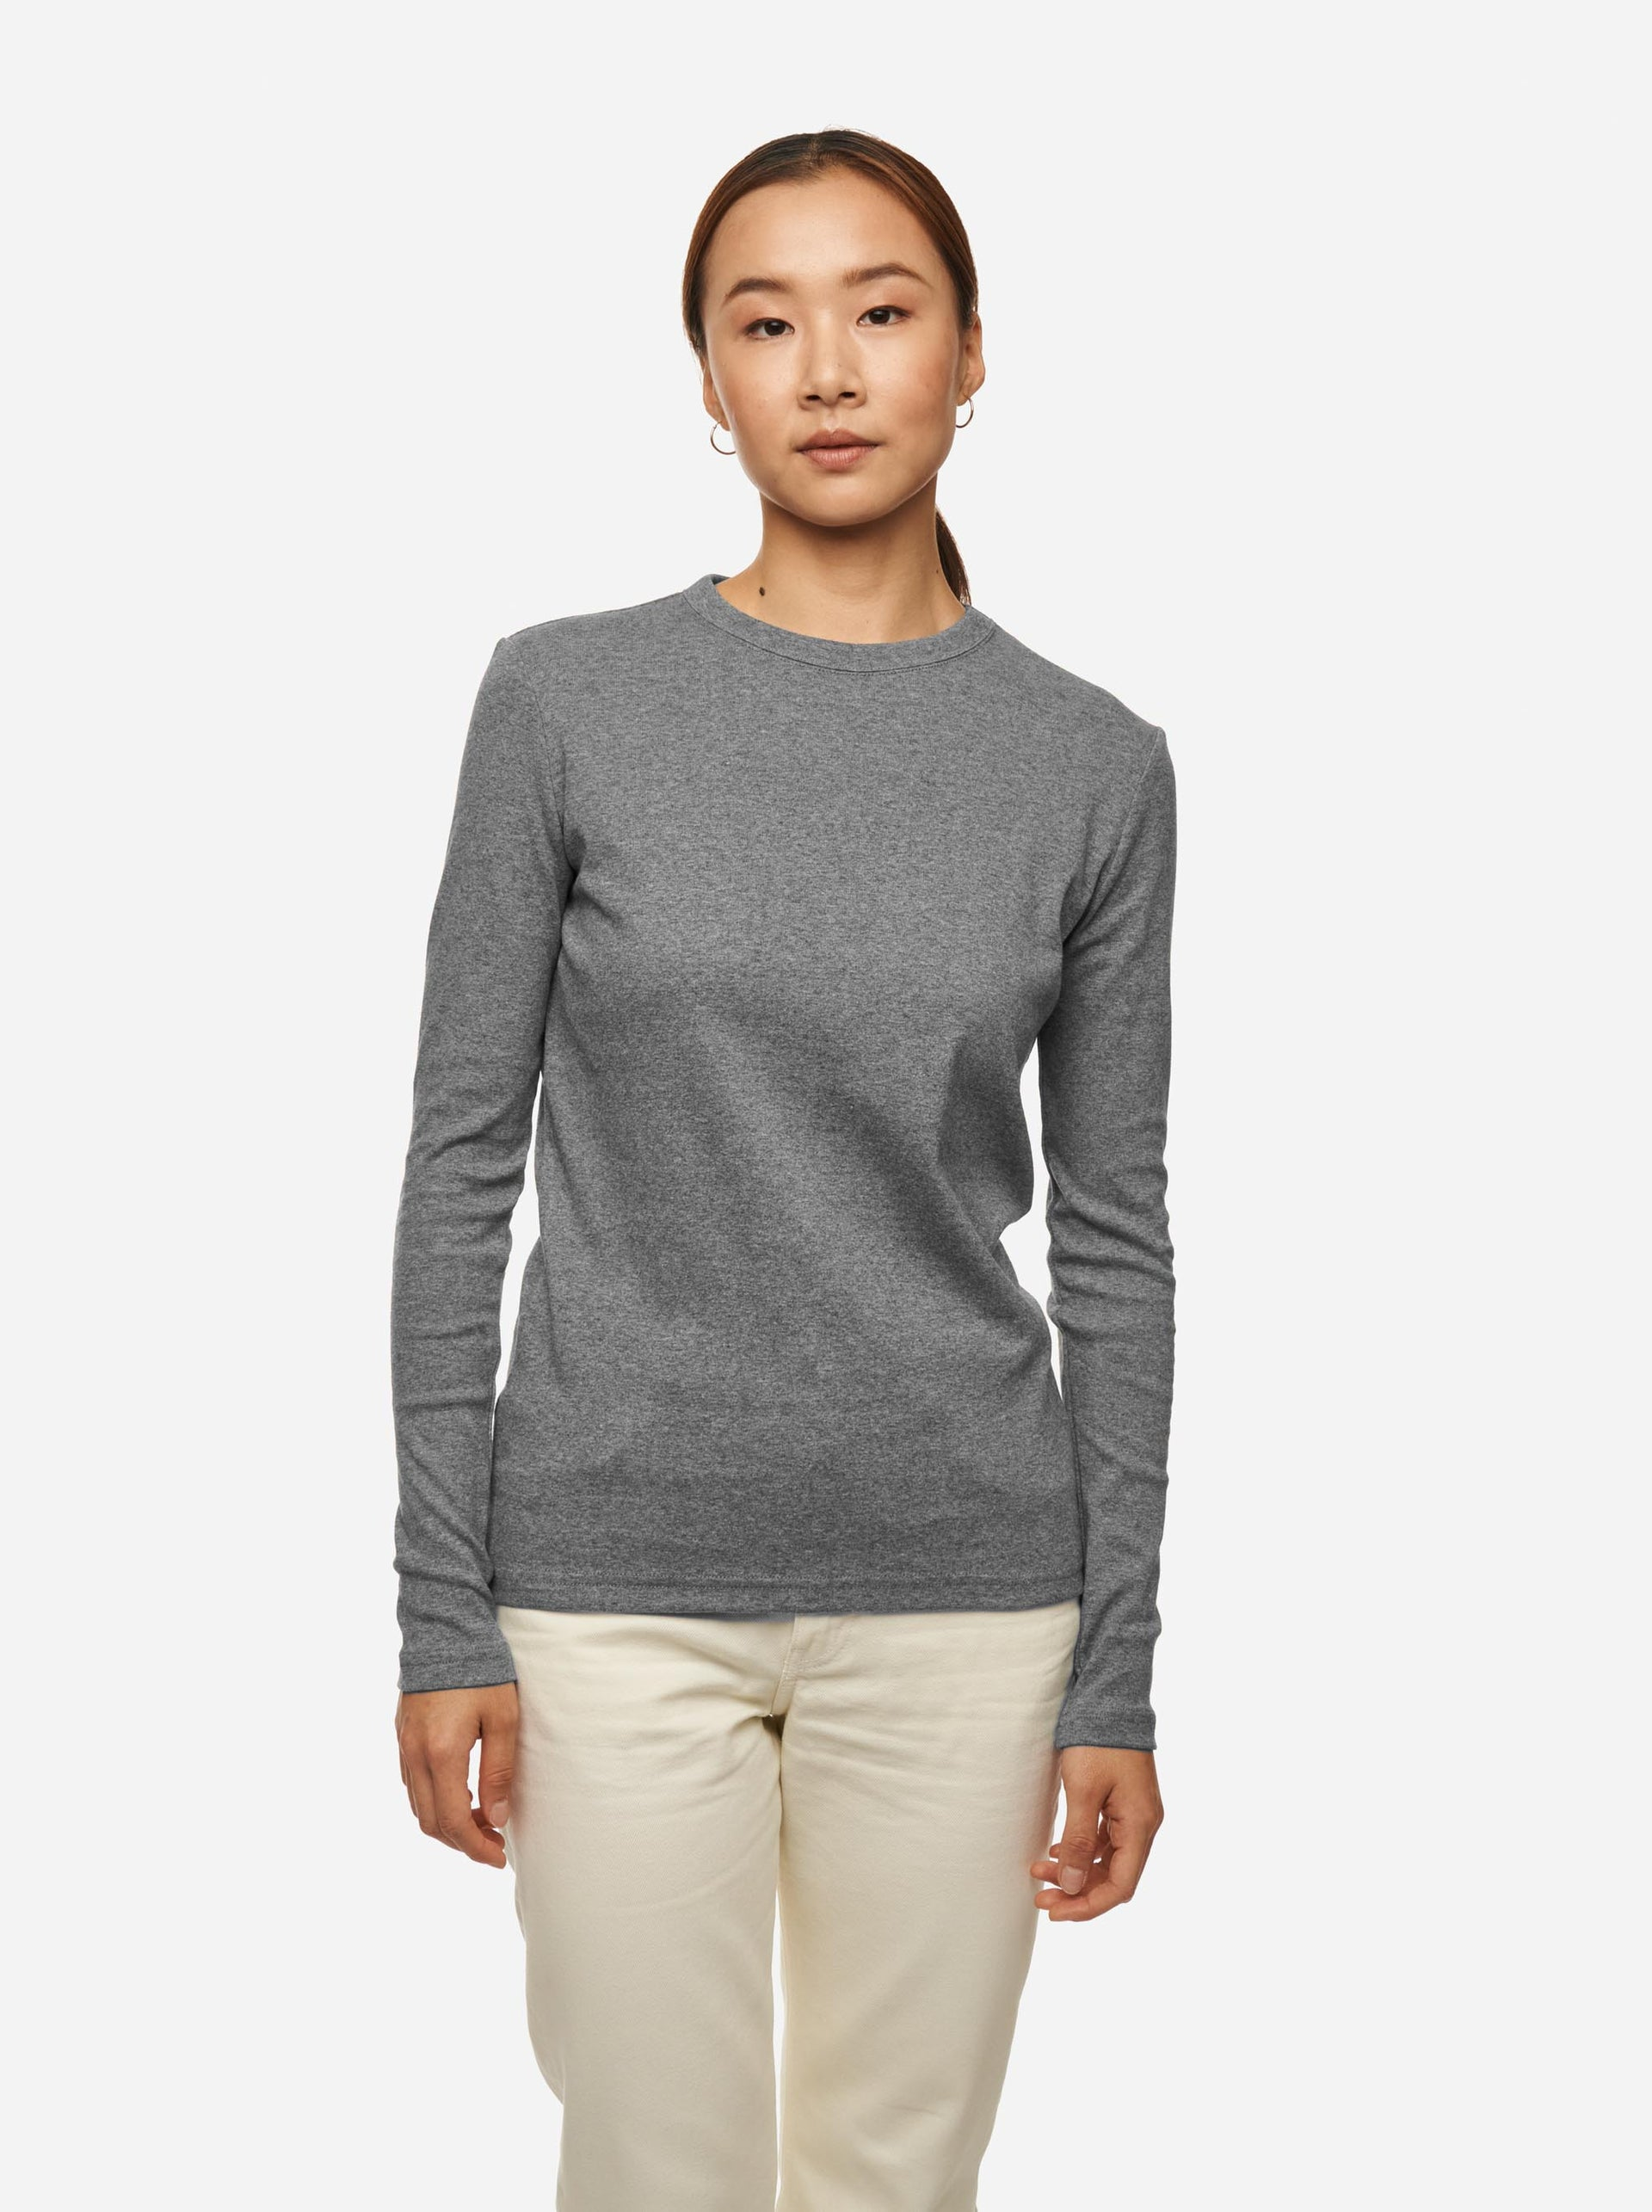 The Longsleeve T-Shirt - Melange grey